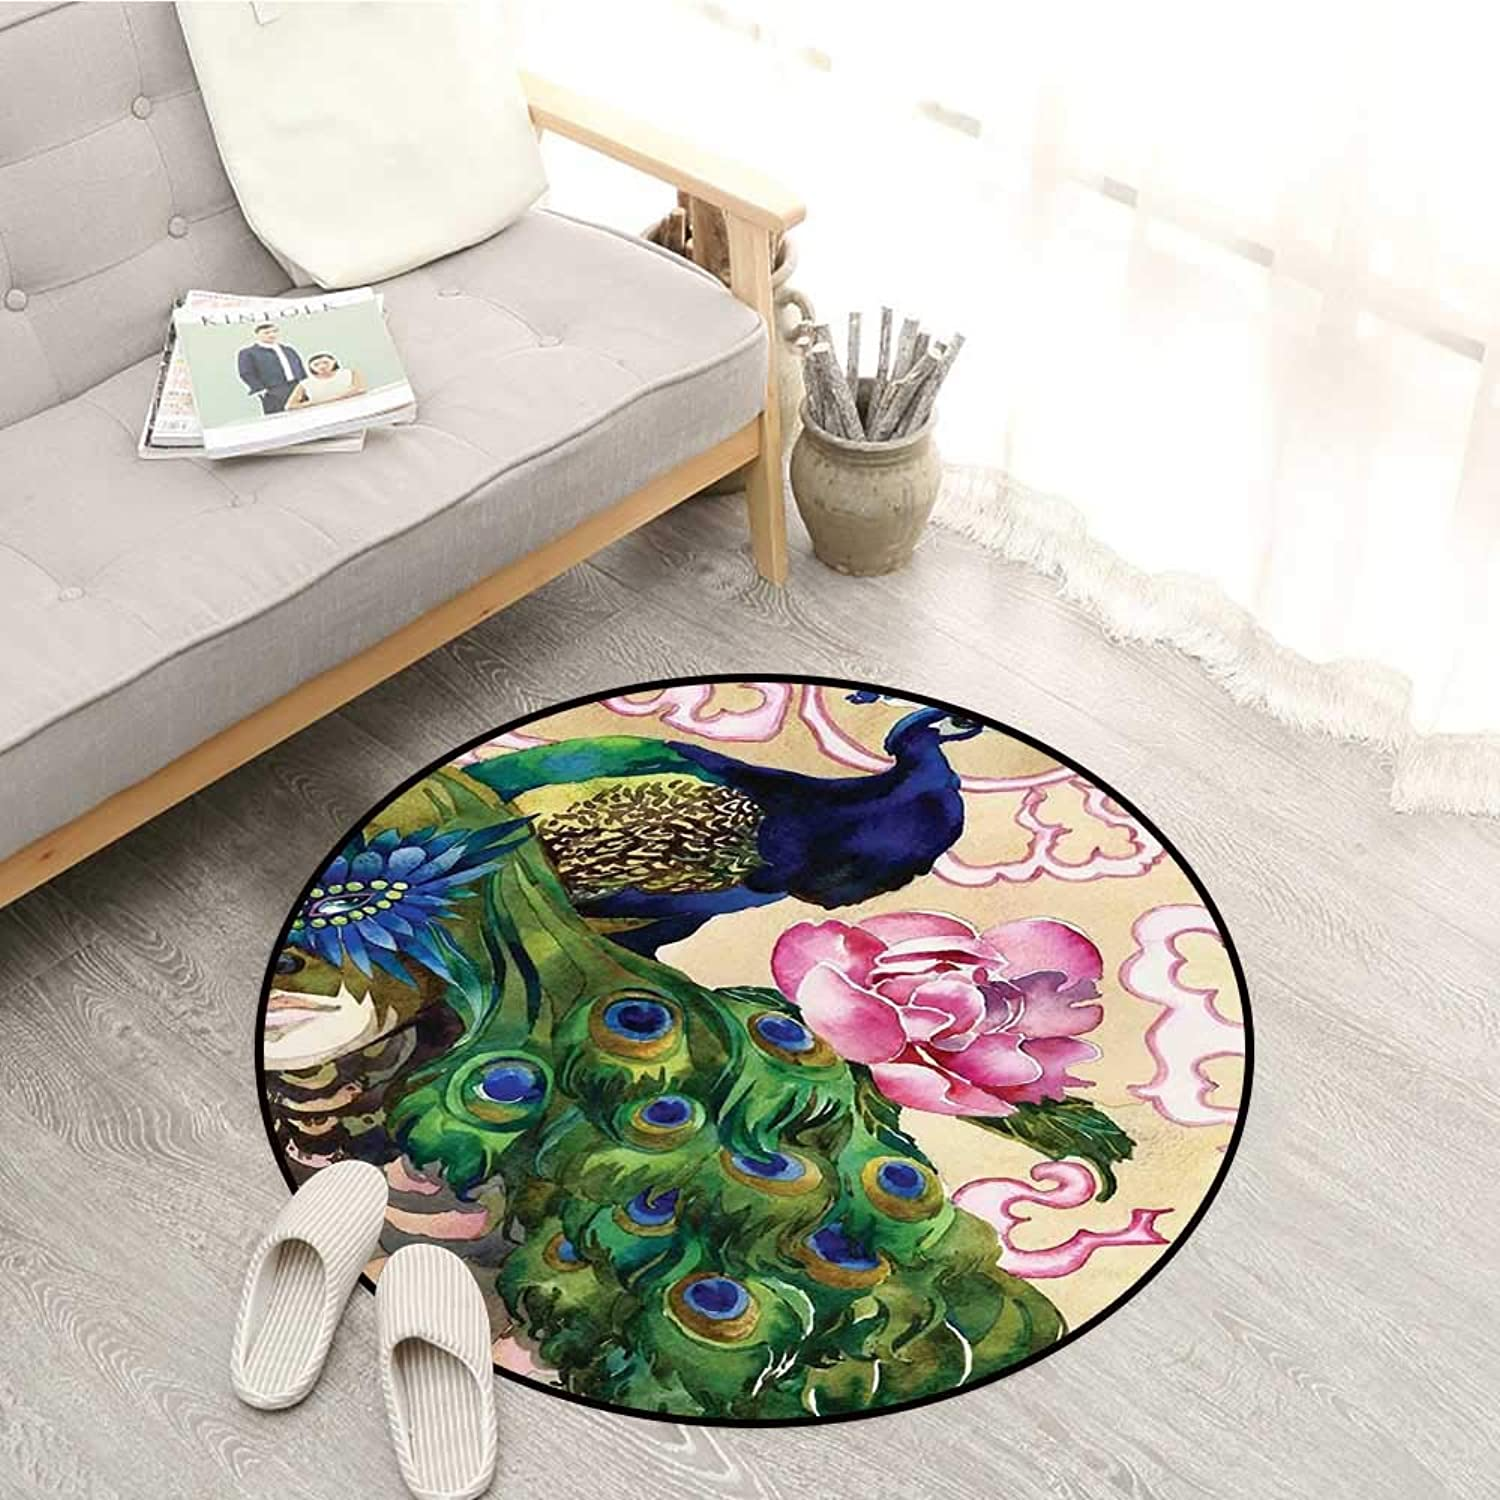 Peacock Kids Rugs Fantasy Composition with Woman and Peafowl in Watercolor Artwork Sofa Coffee Table Mat 4'11  Green Pale Pink Navy bluee